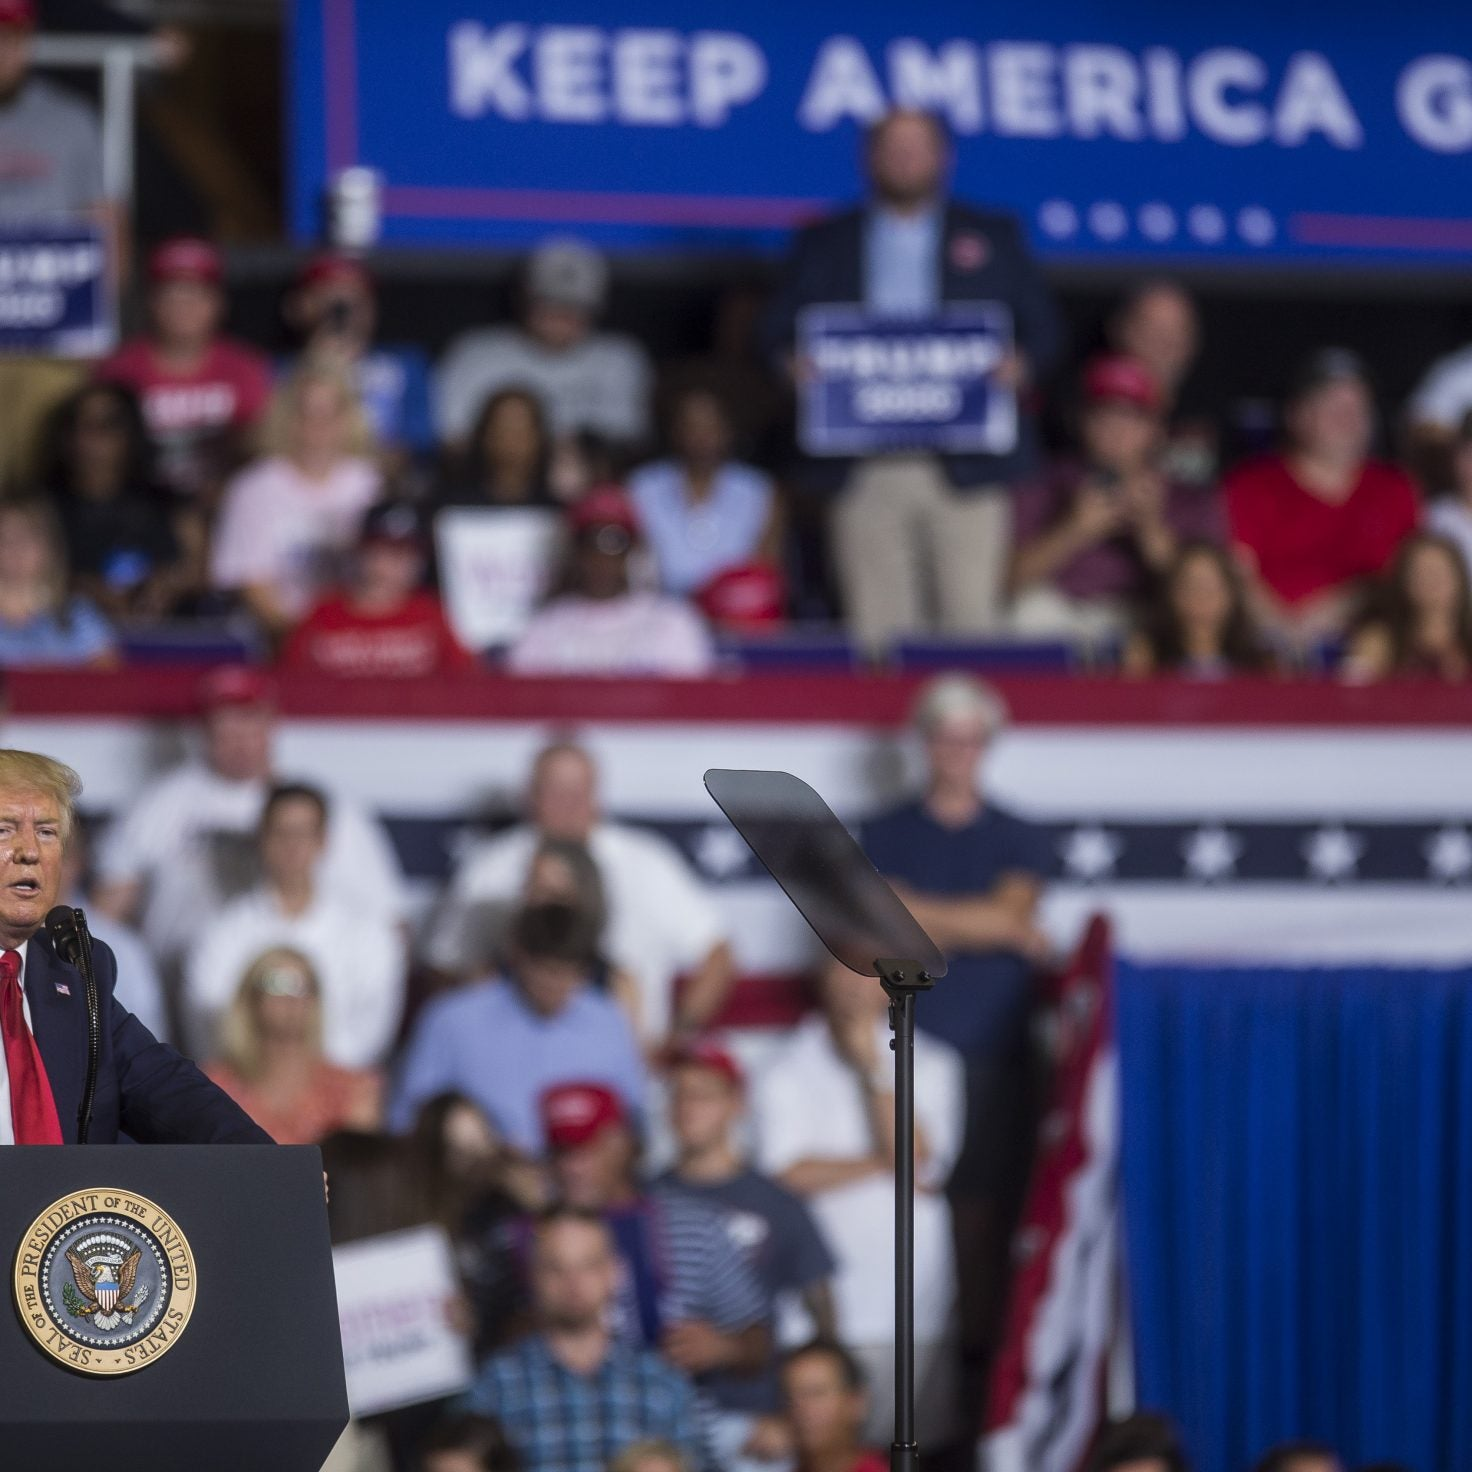 Trump Says He 'Felt A Little Bit Badly' About Supporters Chanting 'Send Her Back' About Rep. Ilhan Omar